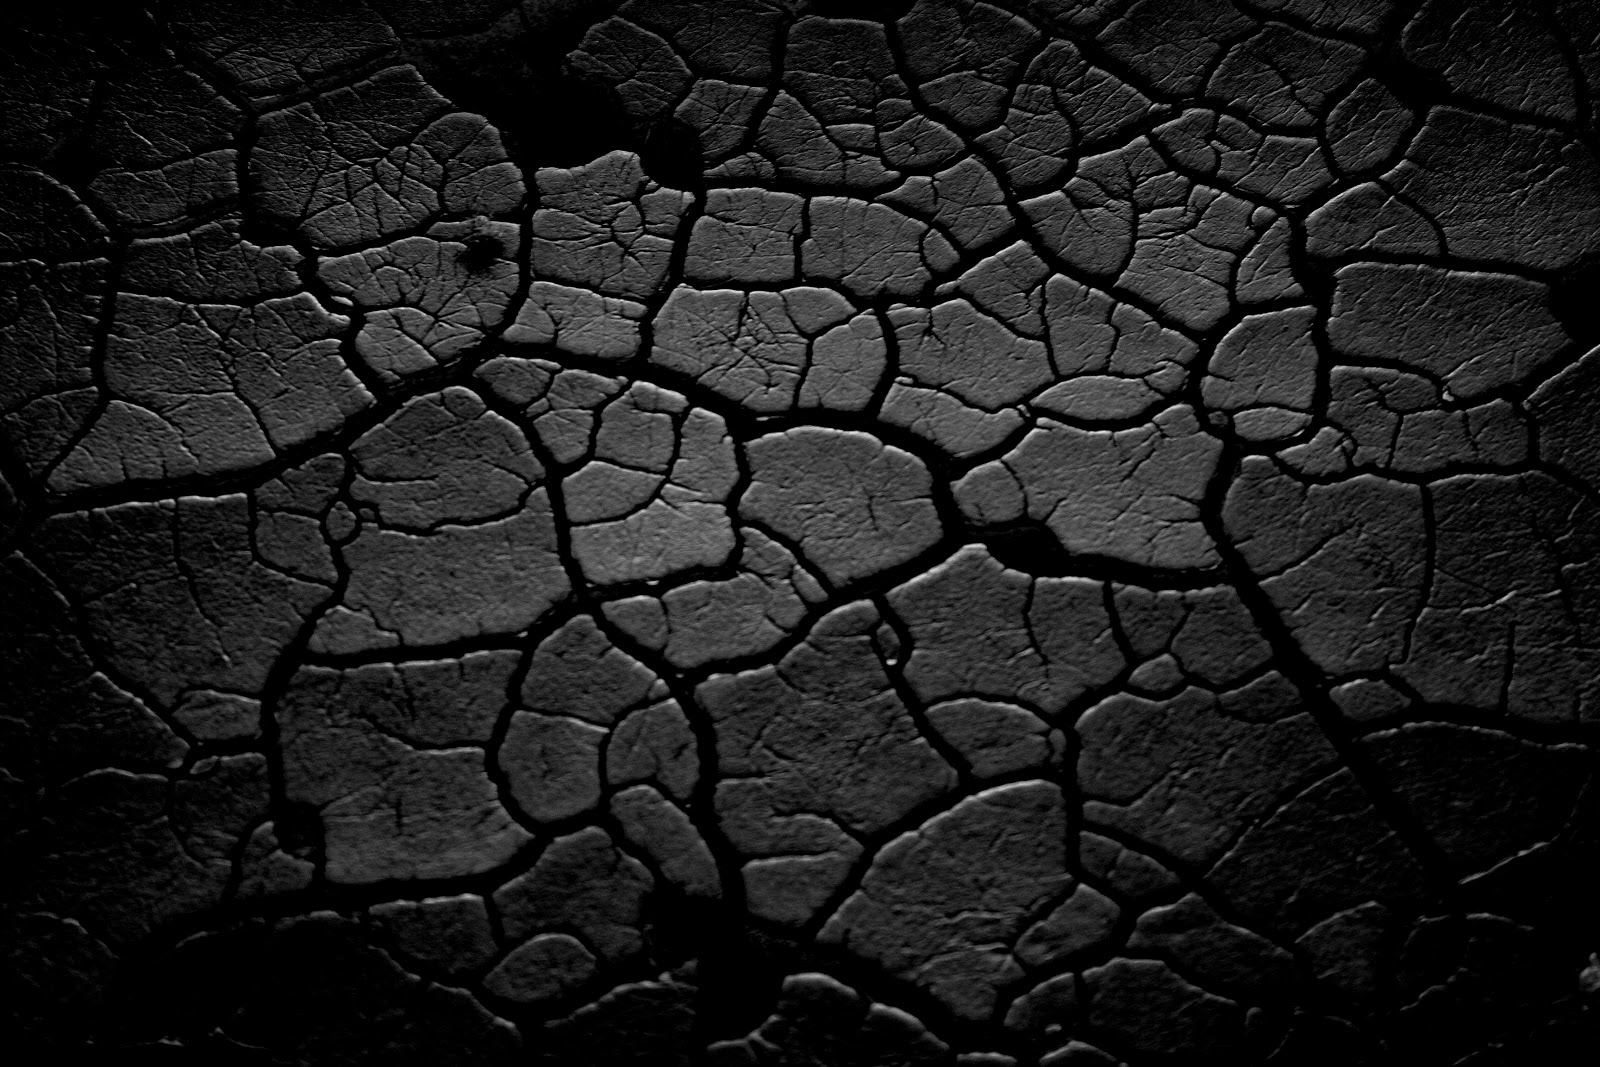 Black and White Photography Texture